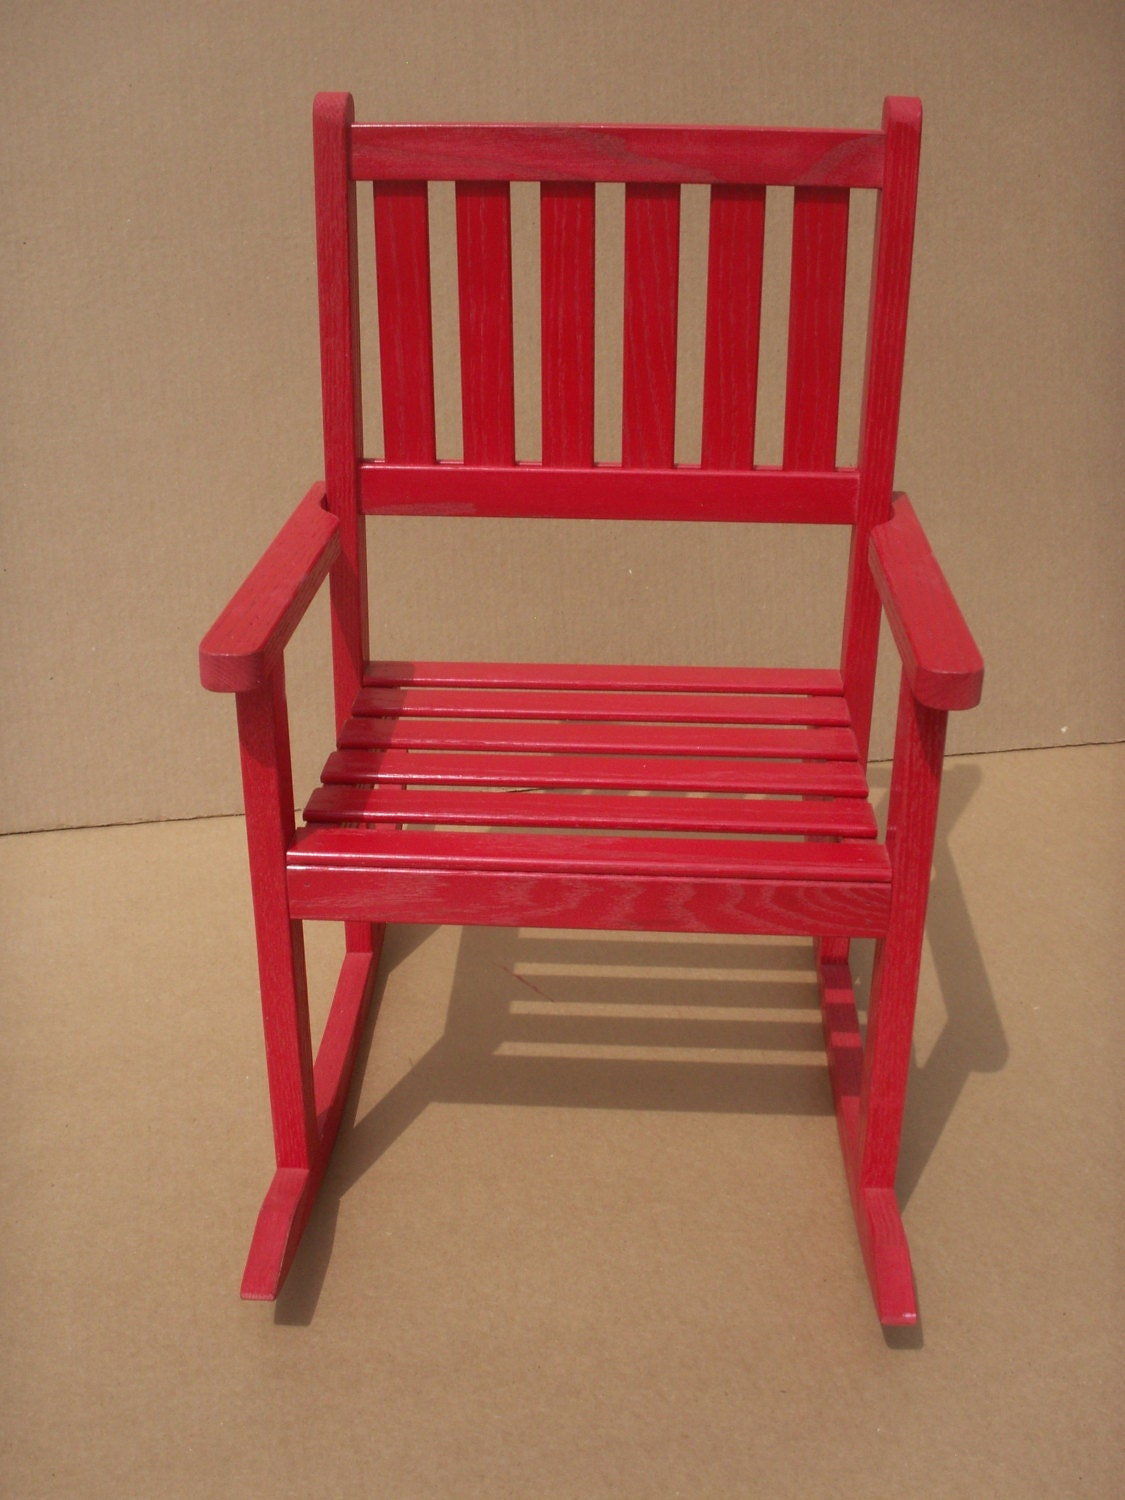 Childs solid red oak rocking chair red by ilbok on Etsy